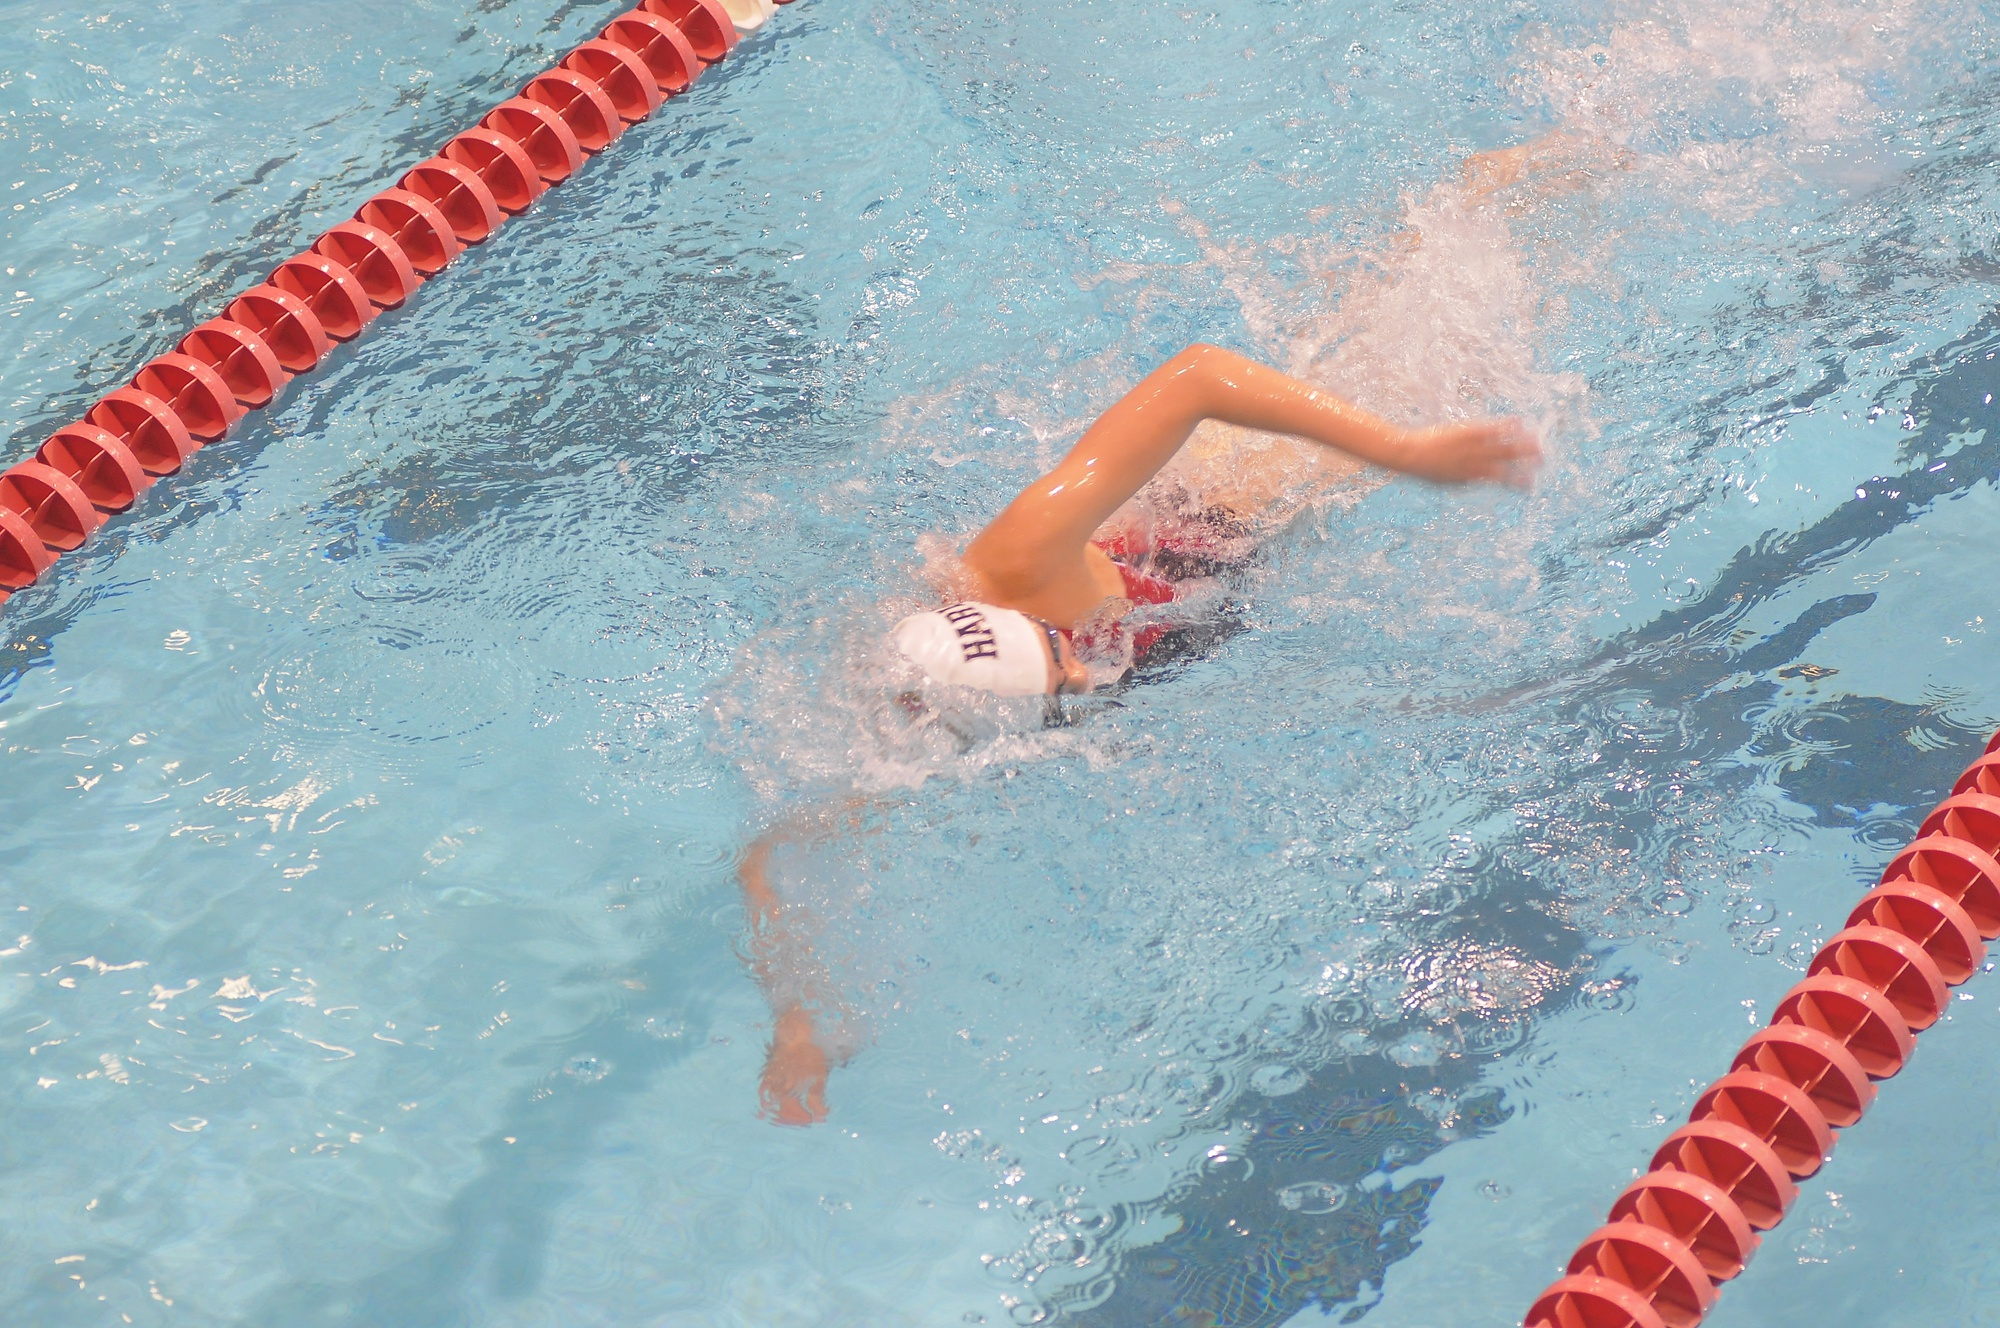 This weekend the Harvard women's swimming and diving team opened its season with a dominating performance.